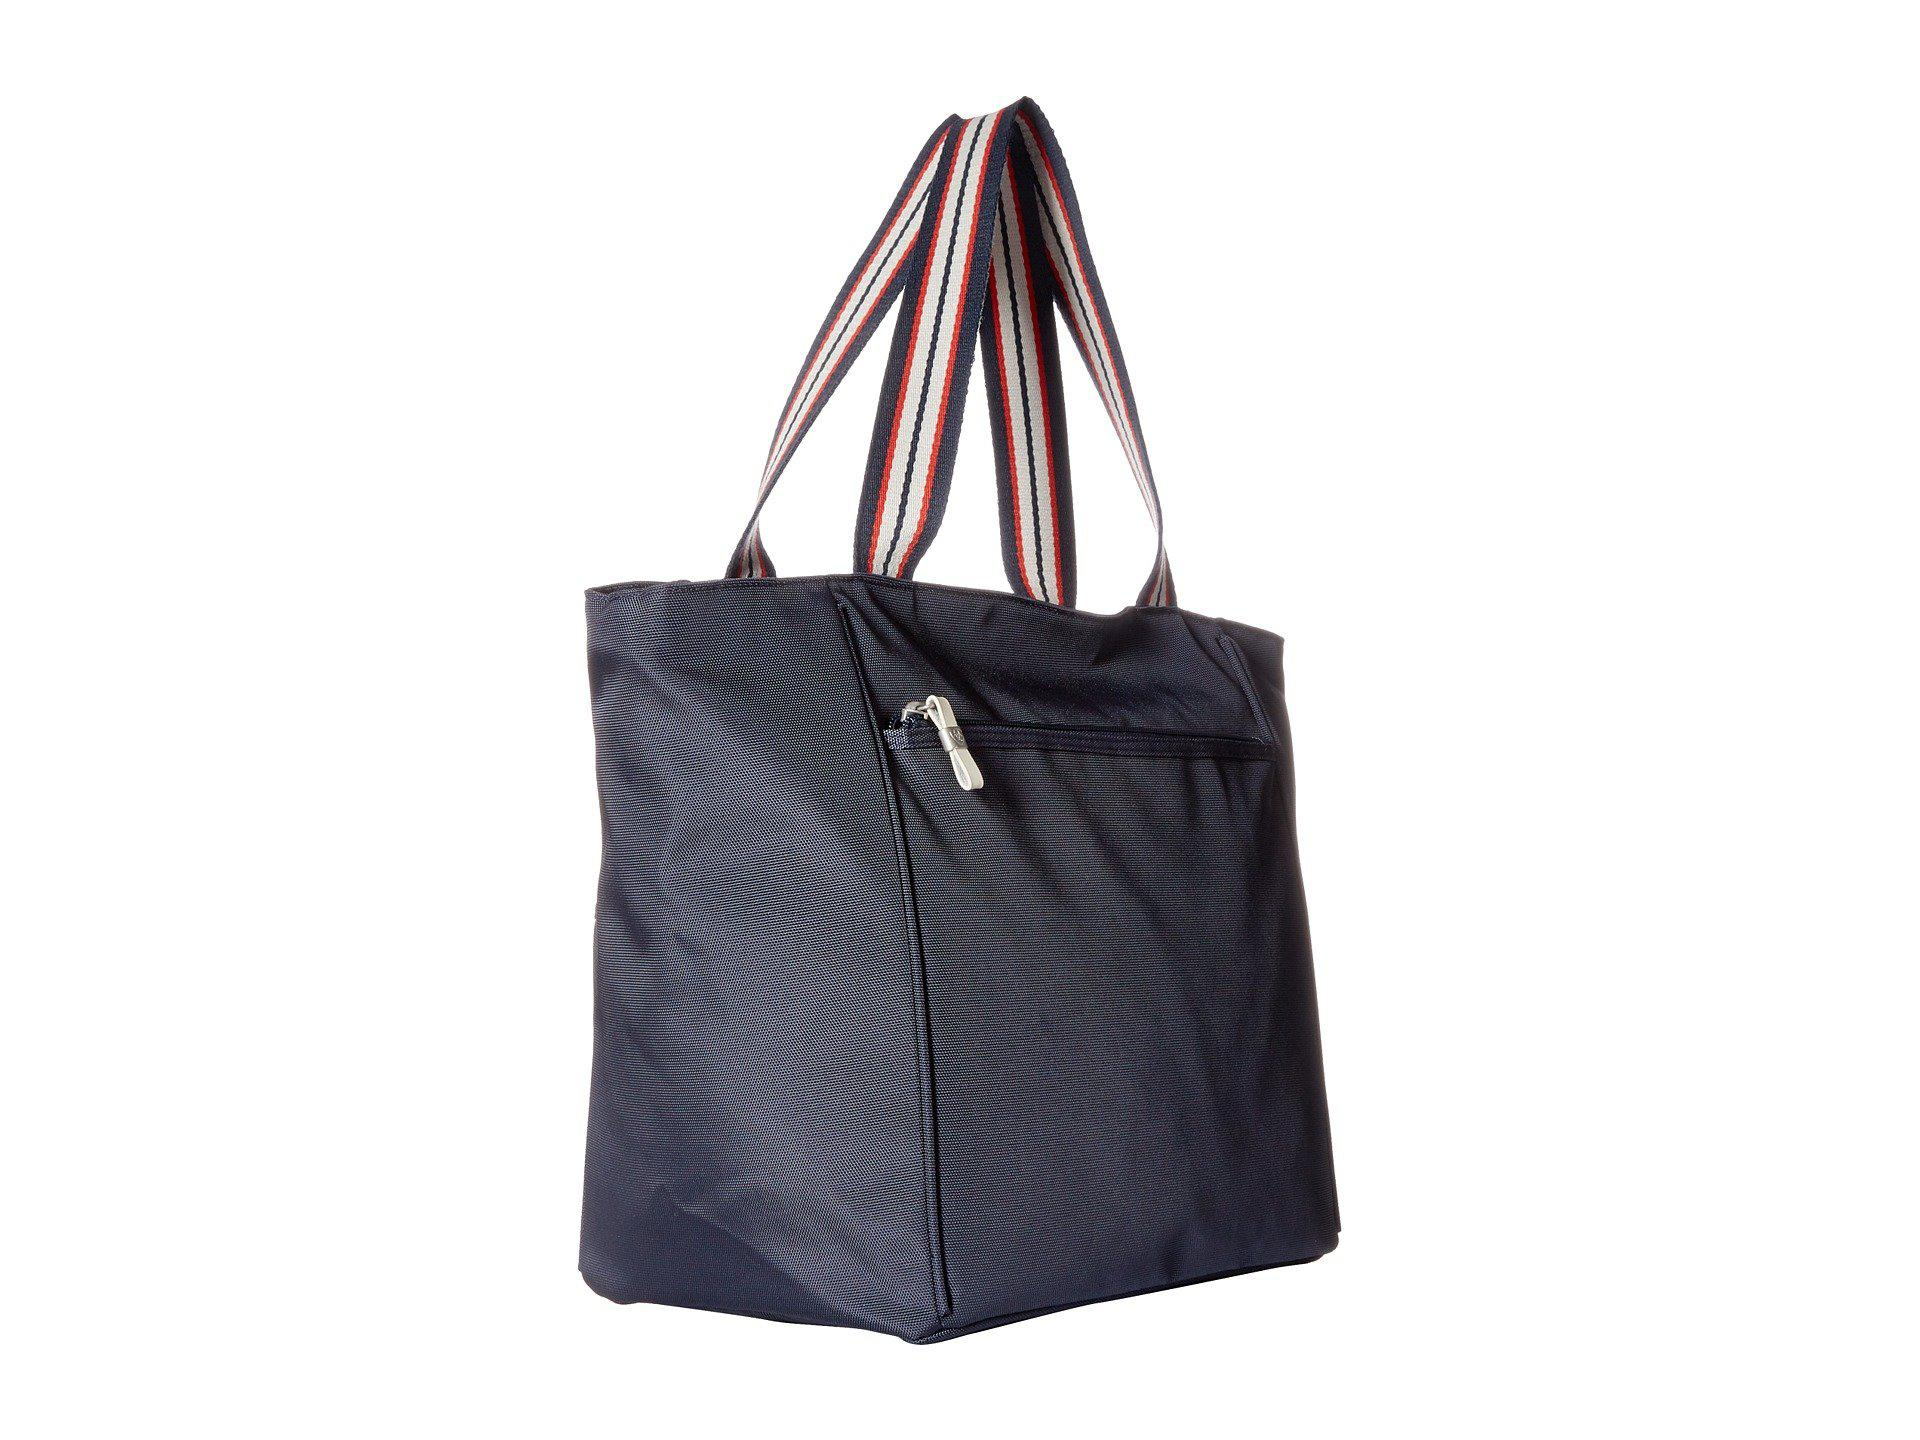 c871b6e56 Ariat Team Carryall Tote in Blue - Lyst